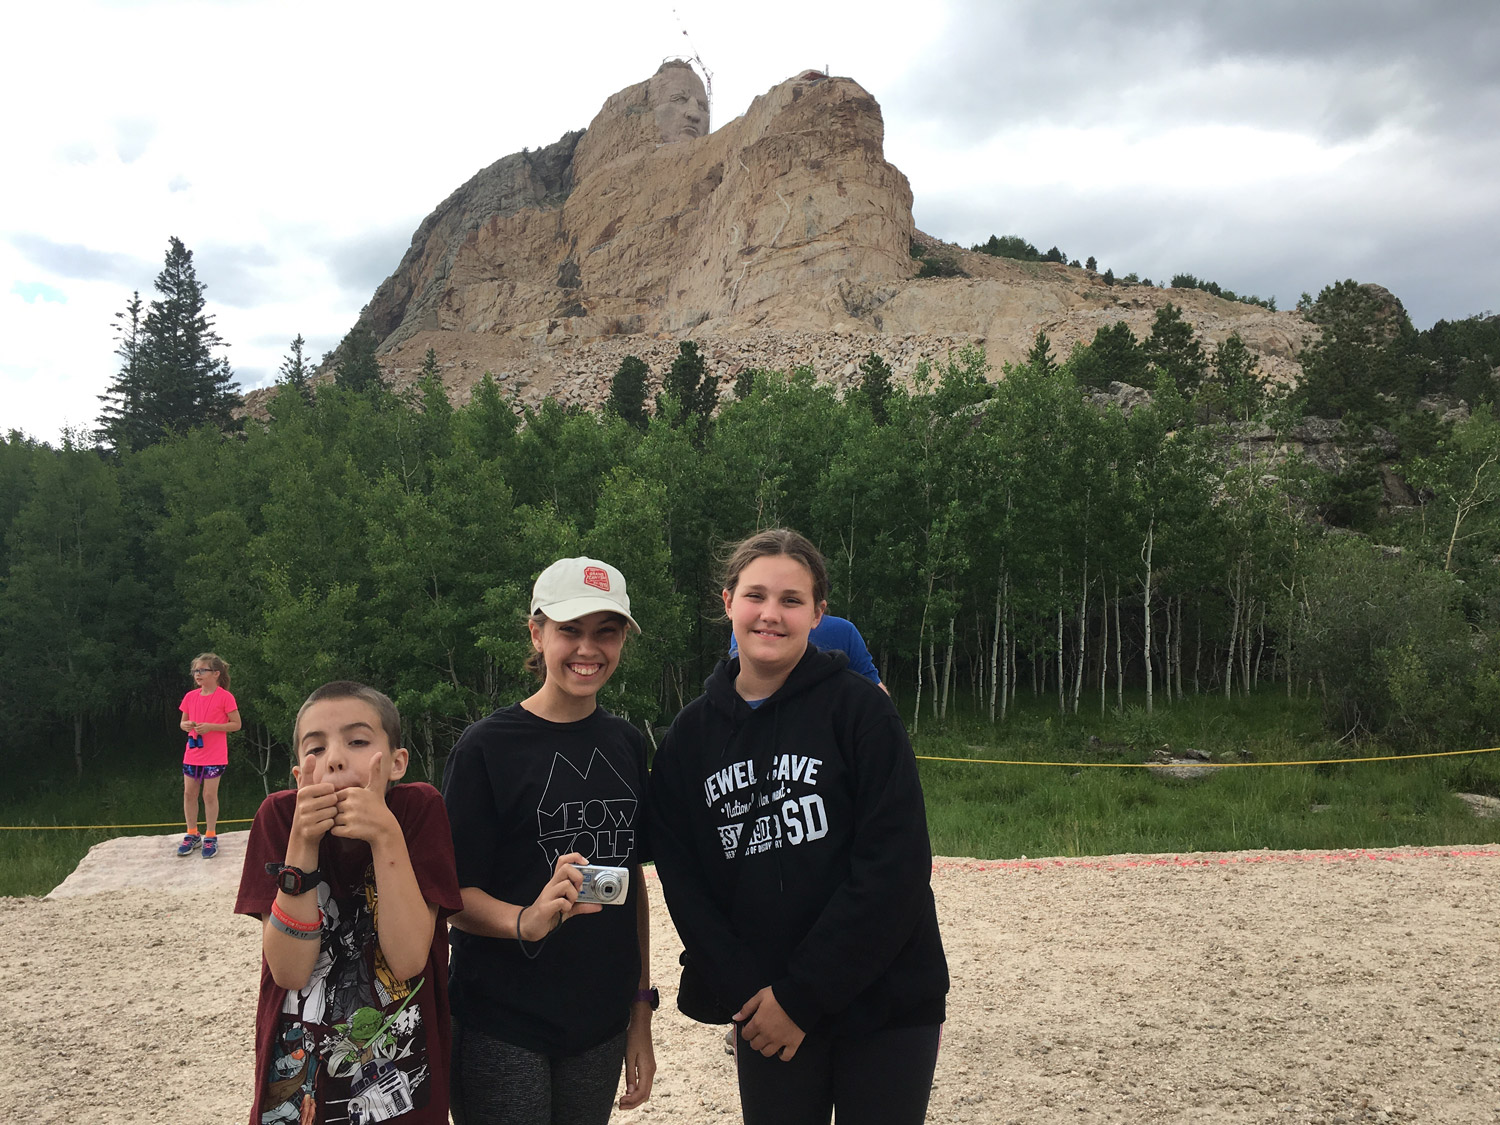 To get this close to Crazy Horse, you have to pay for a shuttle ride to the base. Our bus driver made it totally worth the money.